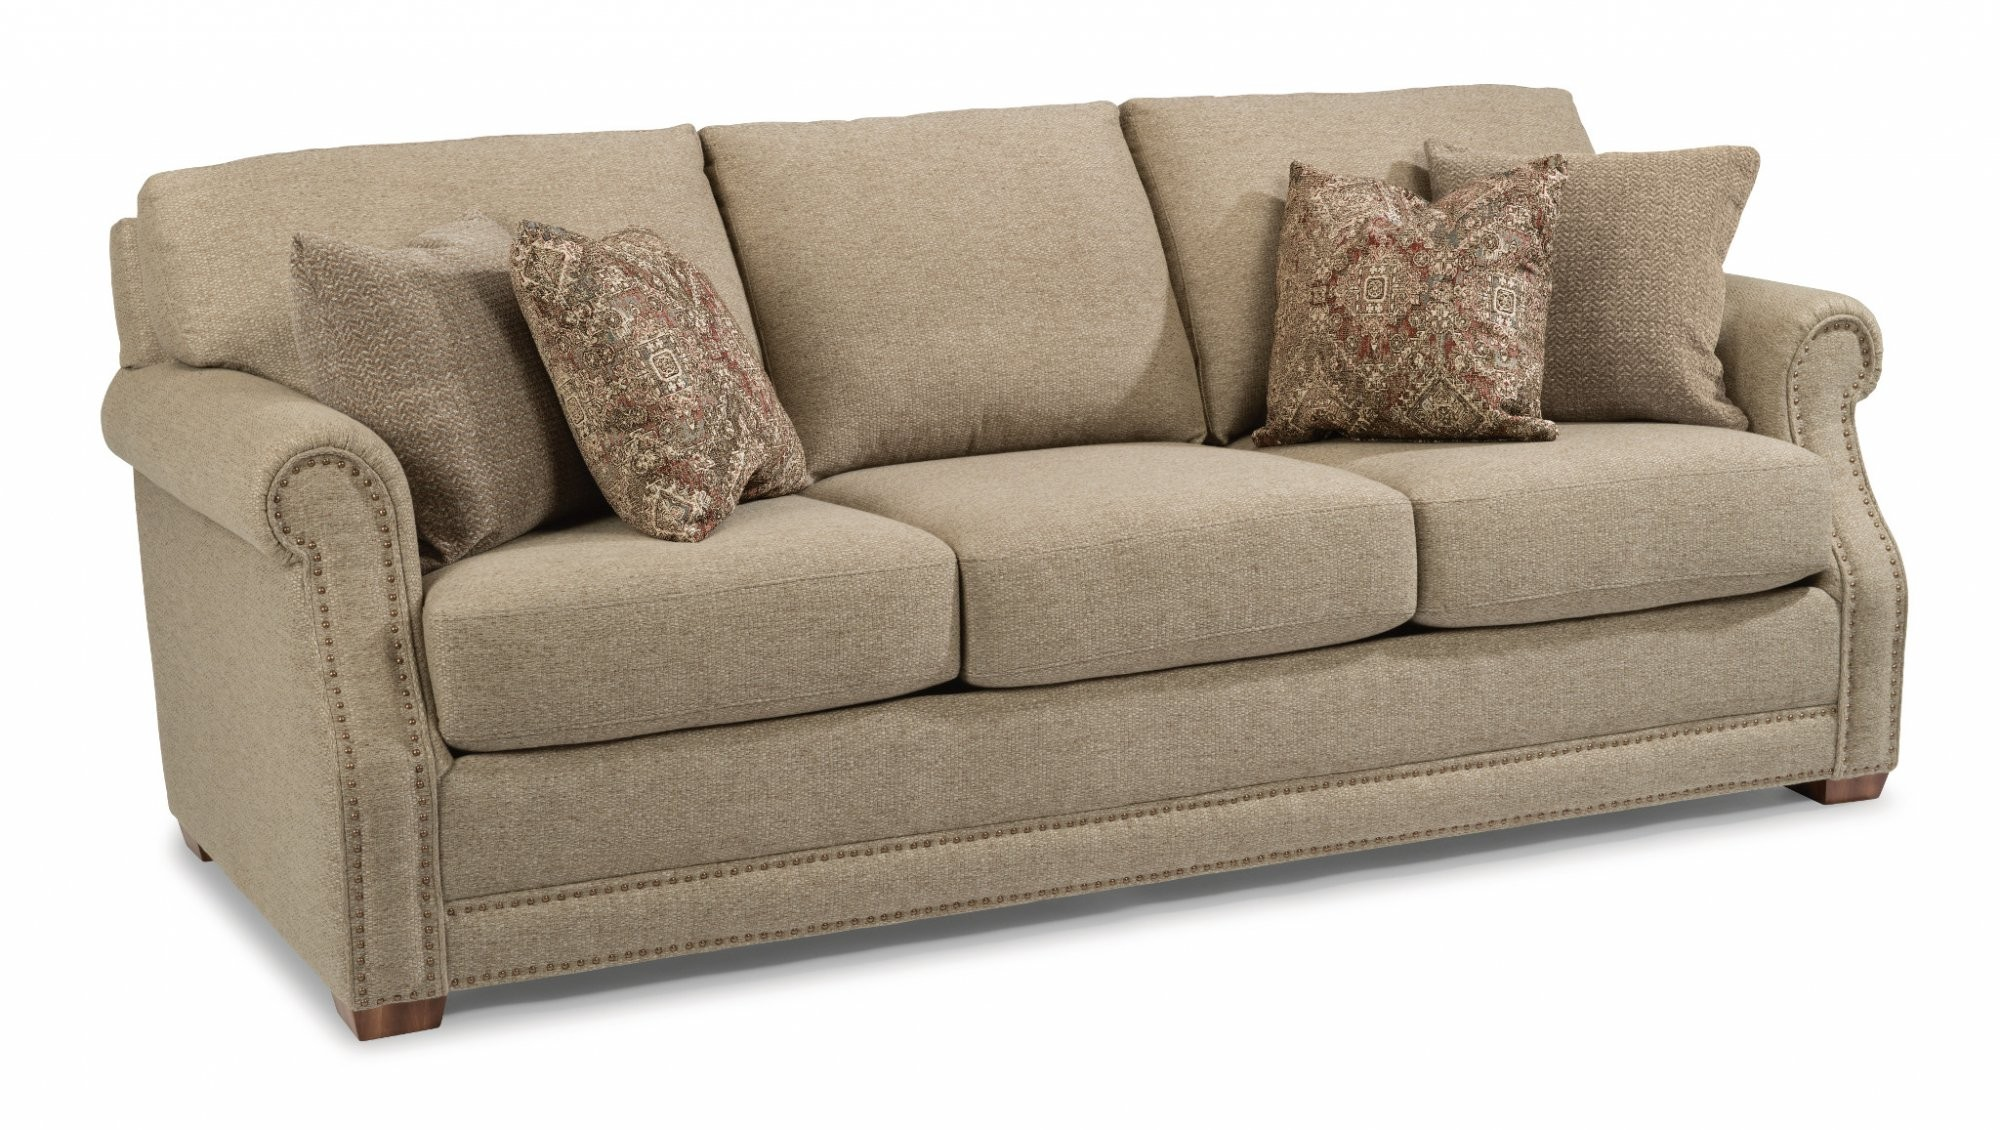 Flex Steel sofa Amazing sofas and Loveseats Reclining sofas and Sleepers Concept